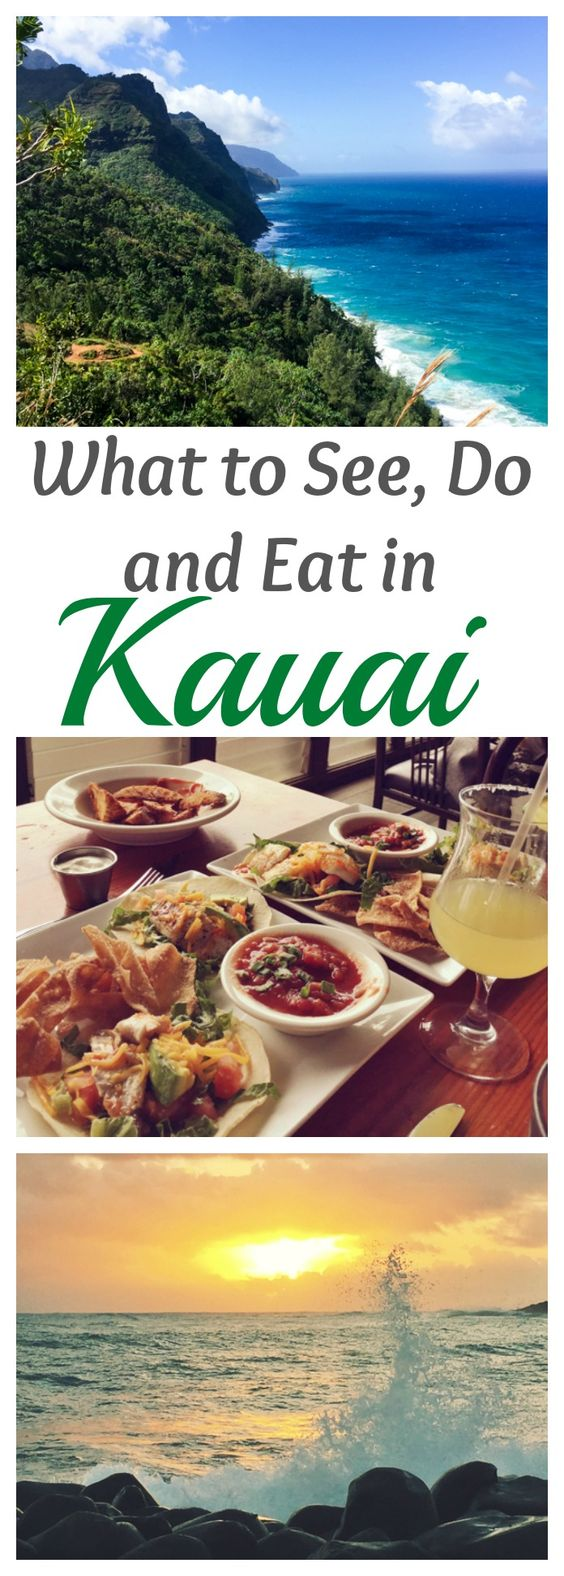 Family Vacay this July - What to See do and Eat in Kauai. Things to do, beaches, and best restaurants.